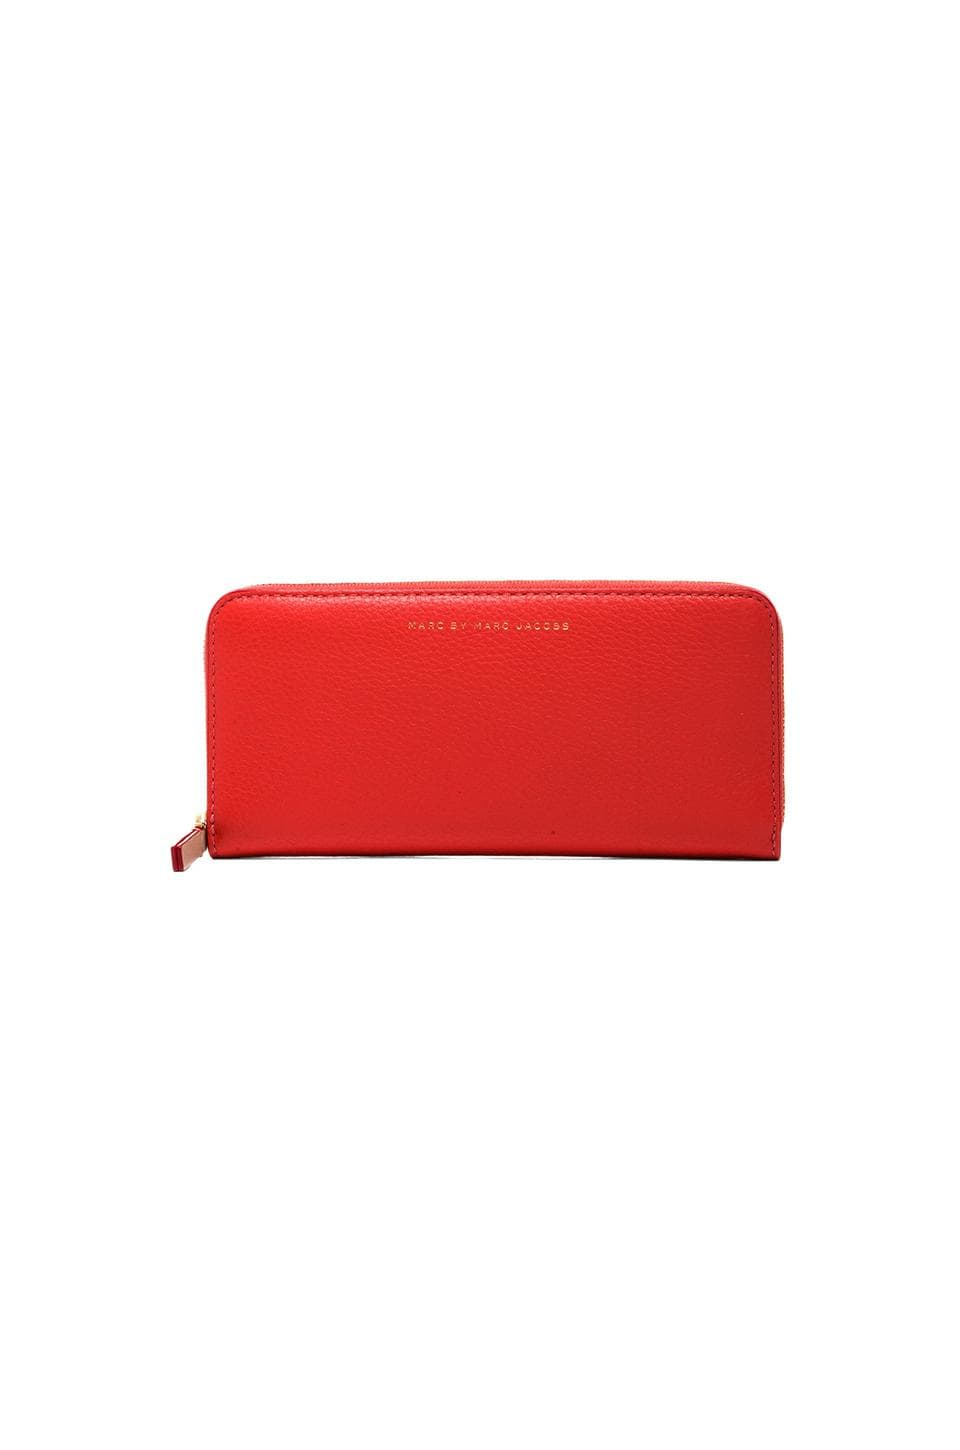 Marc by Marc Jacobs Sophisticato Slim Zip Around Wallet in Vibrant Orange Multi